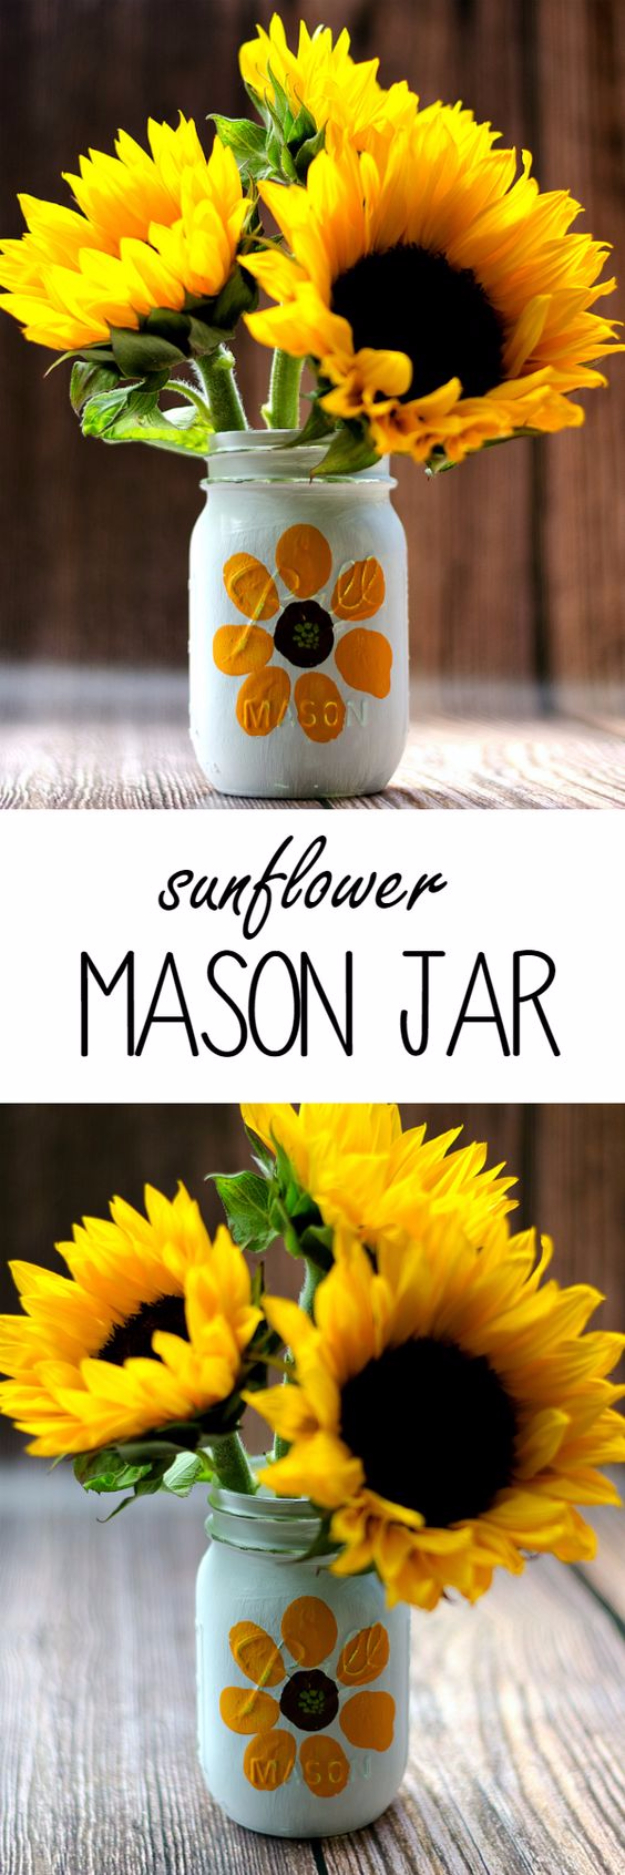 Best Mason Jar Crafts for Fall - Thumbprint Sunflower Mason Jar - DIY Mason Jar Ideas for Centerpieces, Wedding Decorations, Homemade Gifts, Craft Projects with Leaves, Flowers and Burlap, Painted Art, Candles and Luminaries for Cool Home Decor